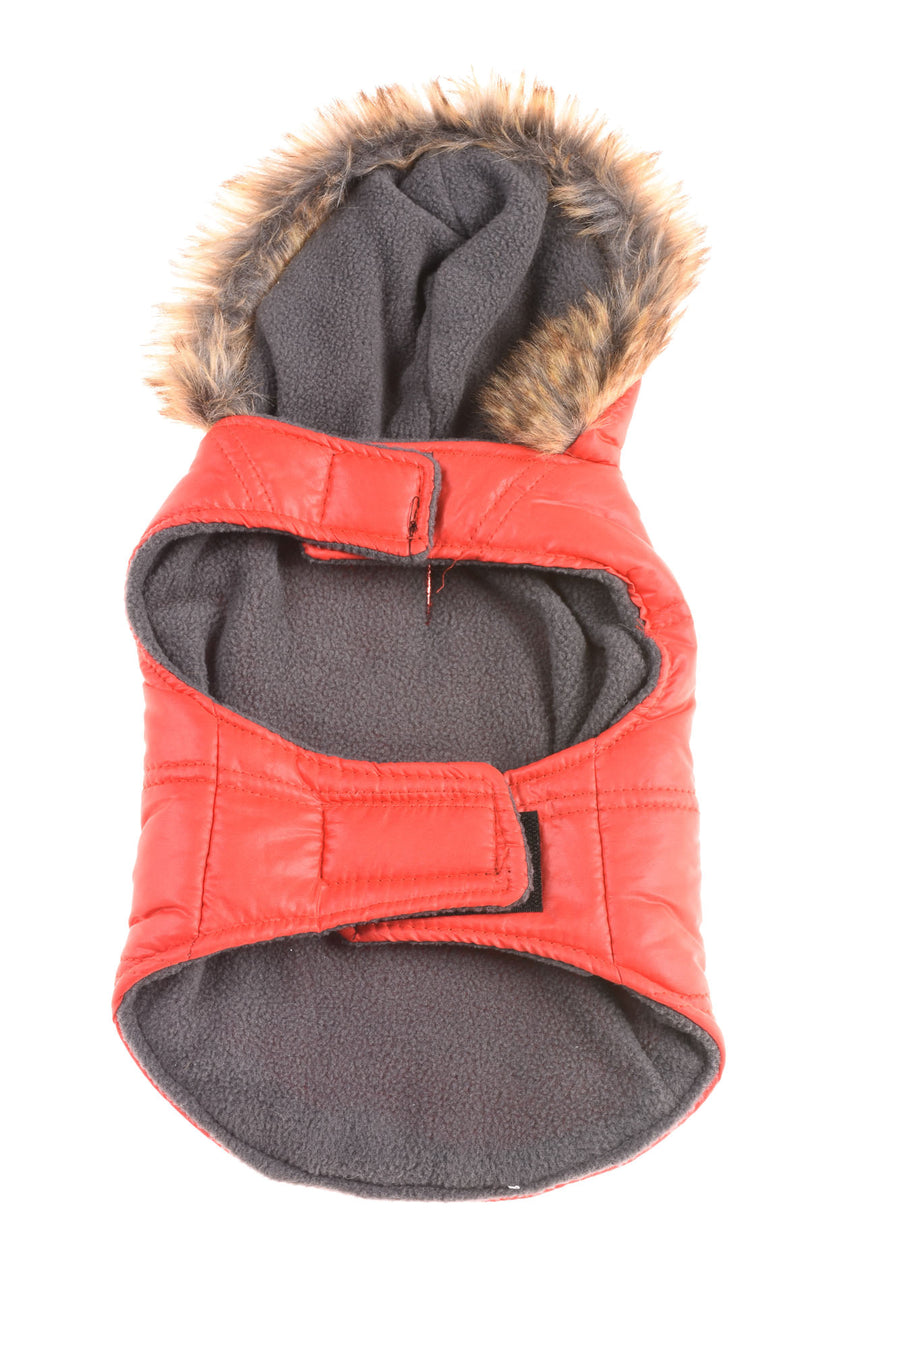 USED Murphy & Roxy Dog Coat Medium Red & Gray